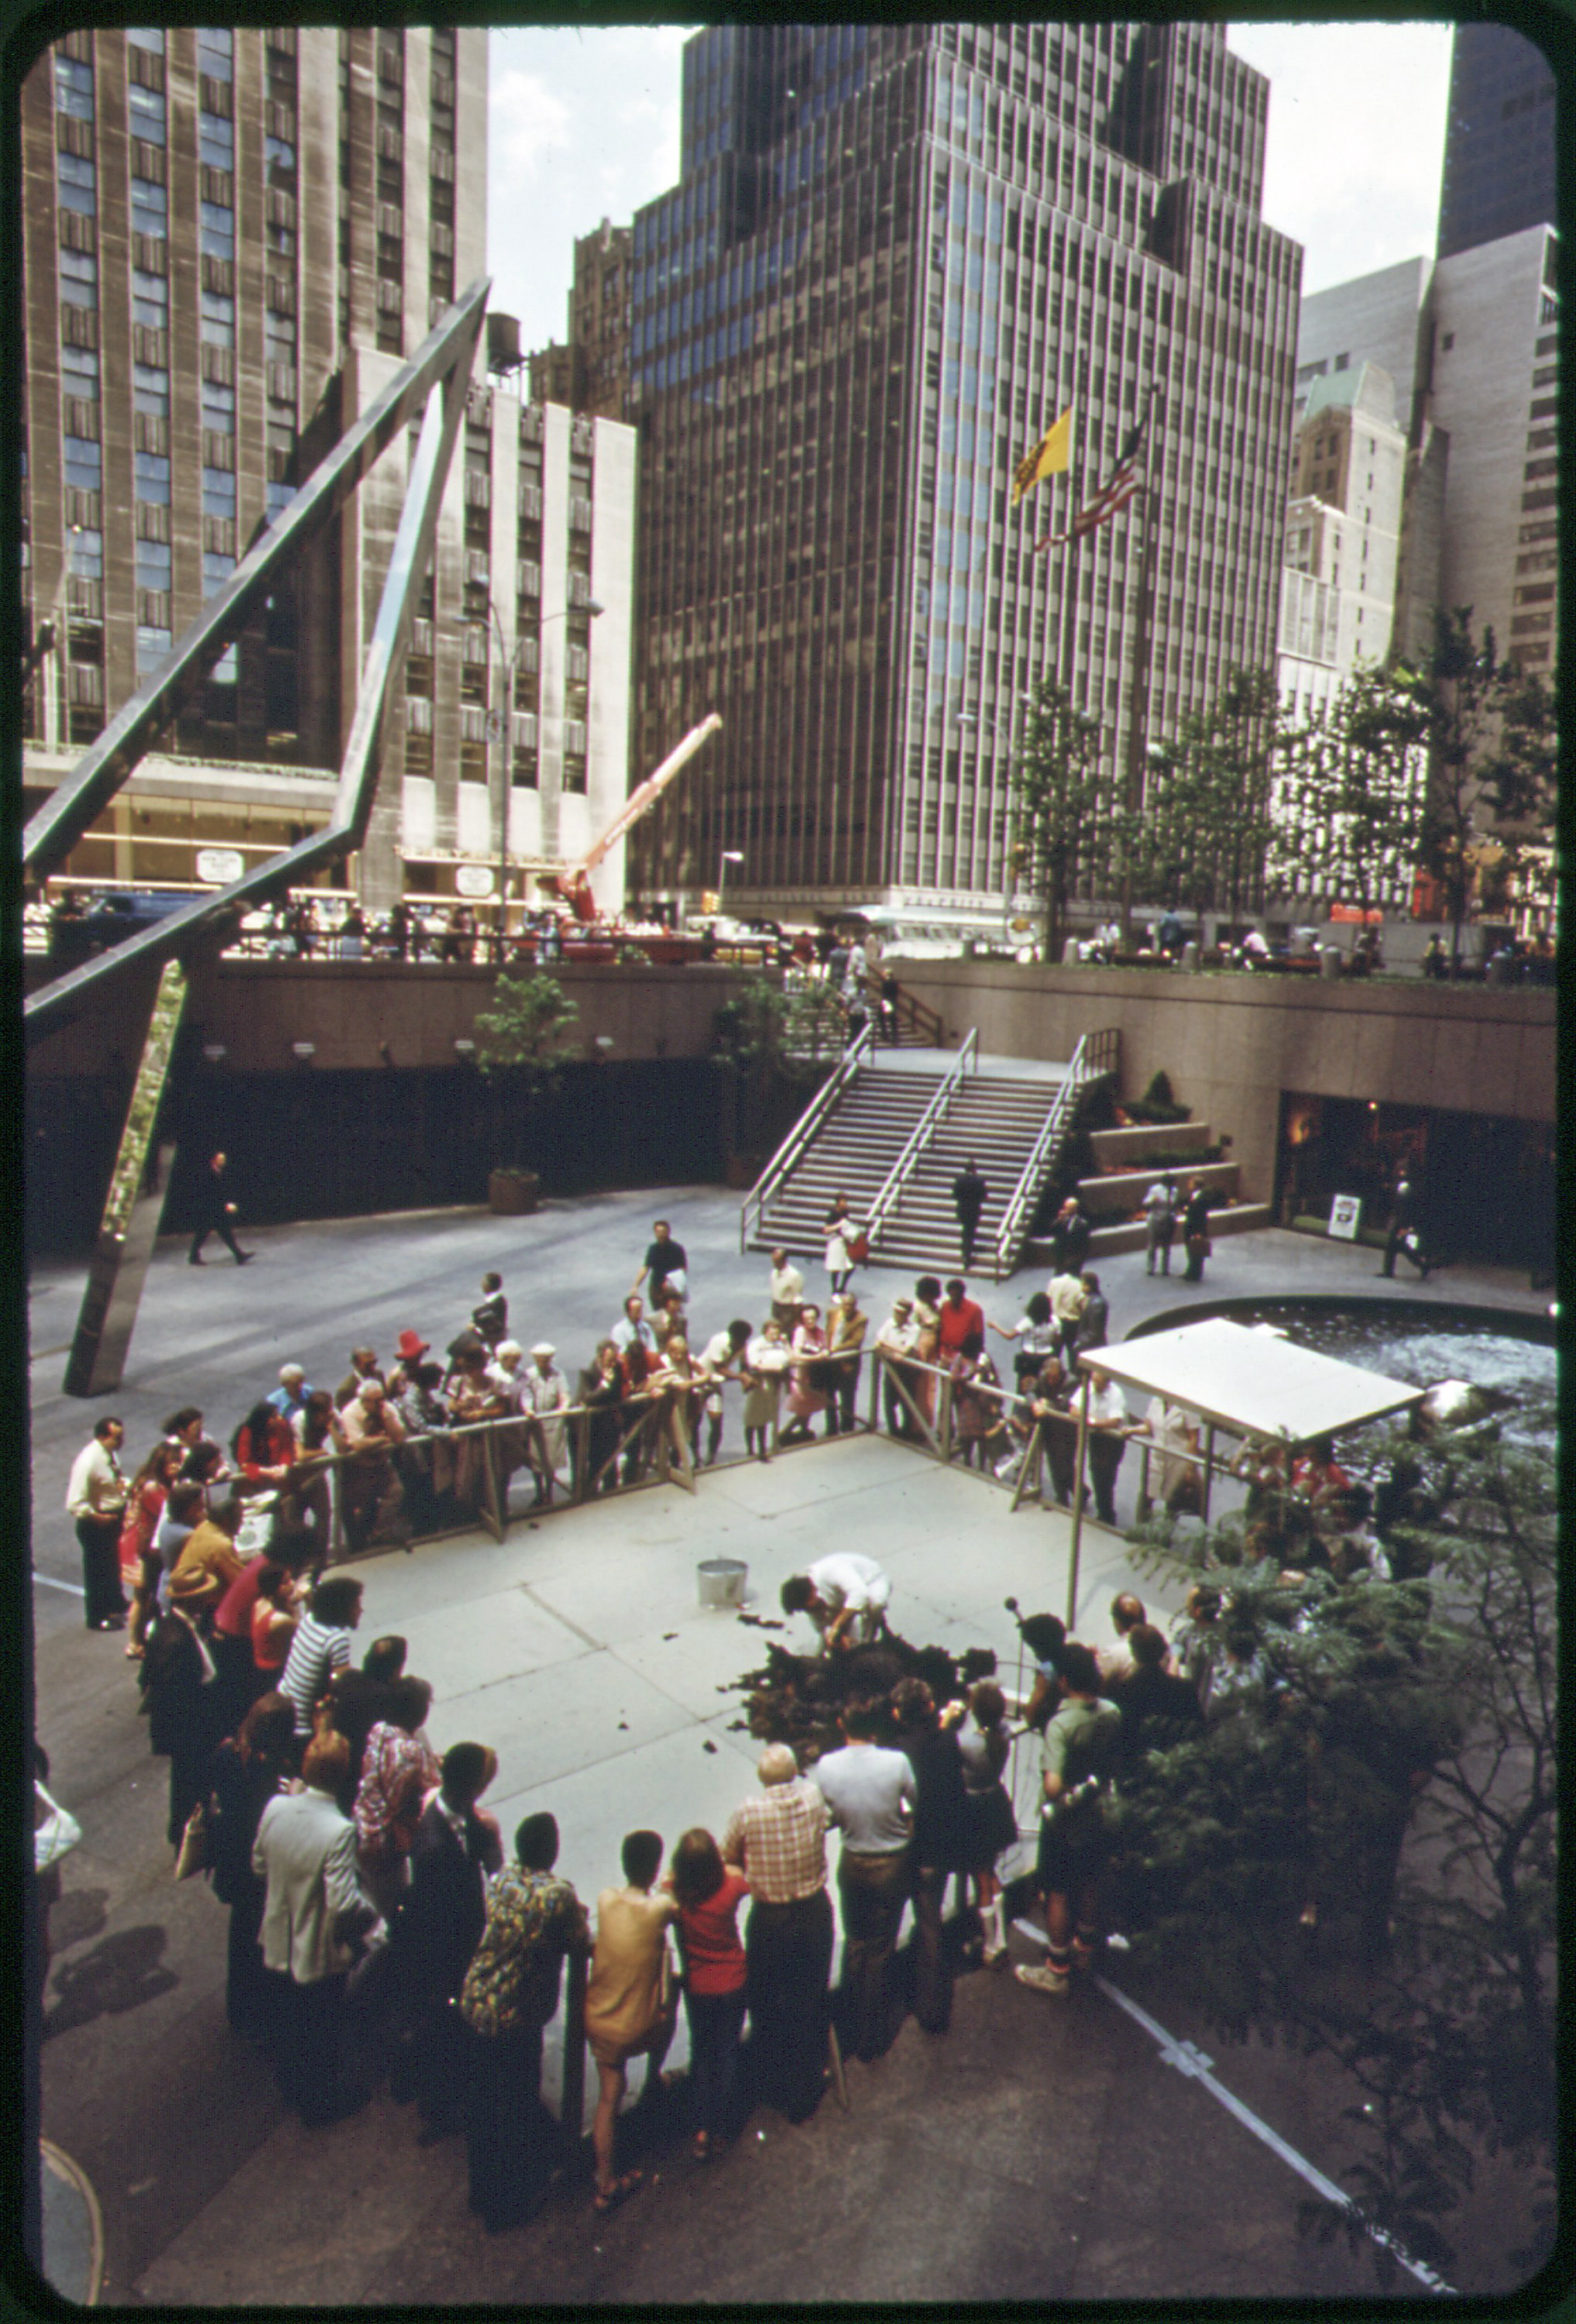 Park Place Motors >> File:DEMONSTRATING SHEEPSHEARING IN THE SUNKEN PLAZA OF THE MCGRAW-HILL BUILDING AT ROCKEFELLER ...